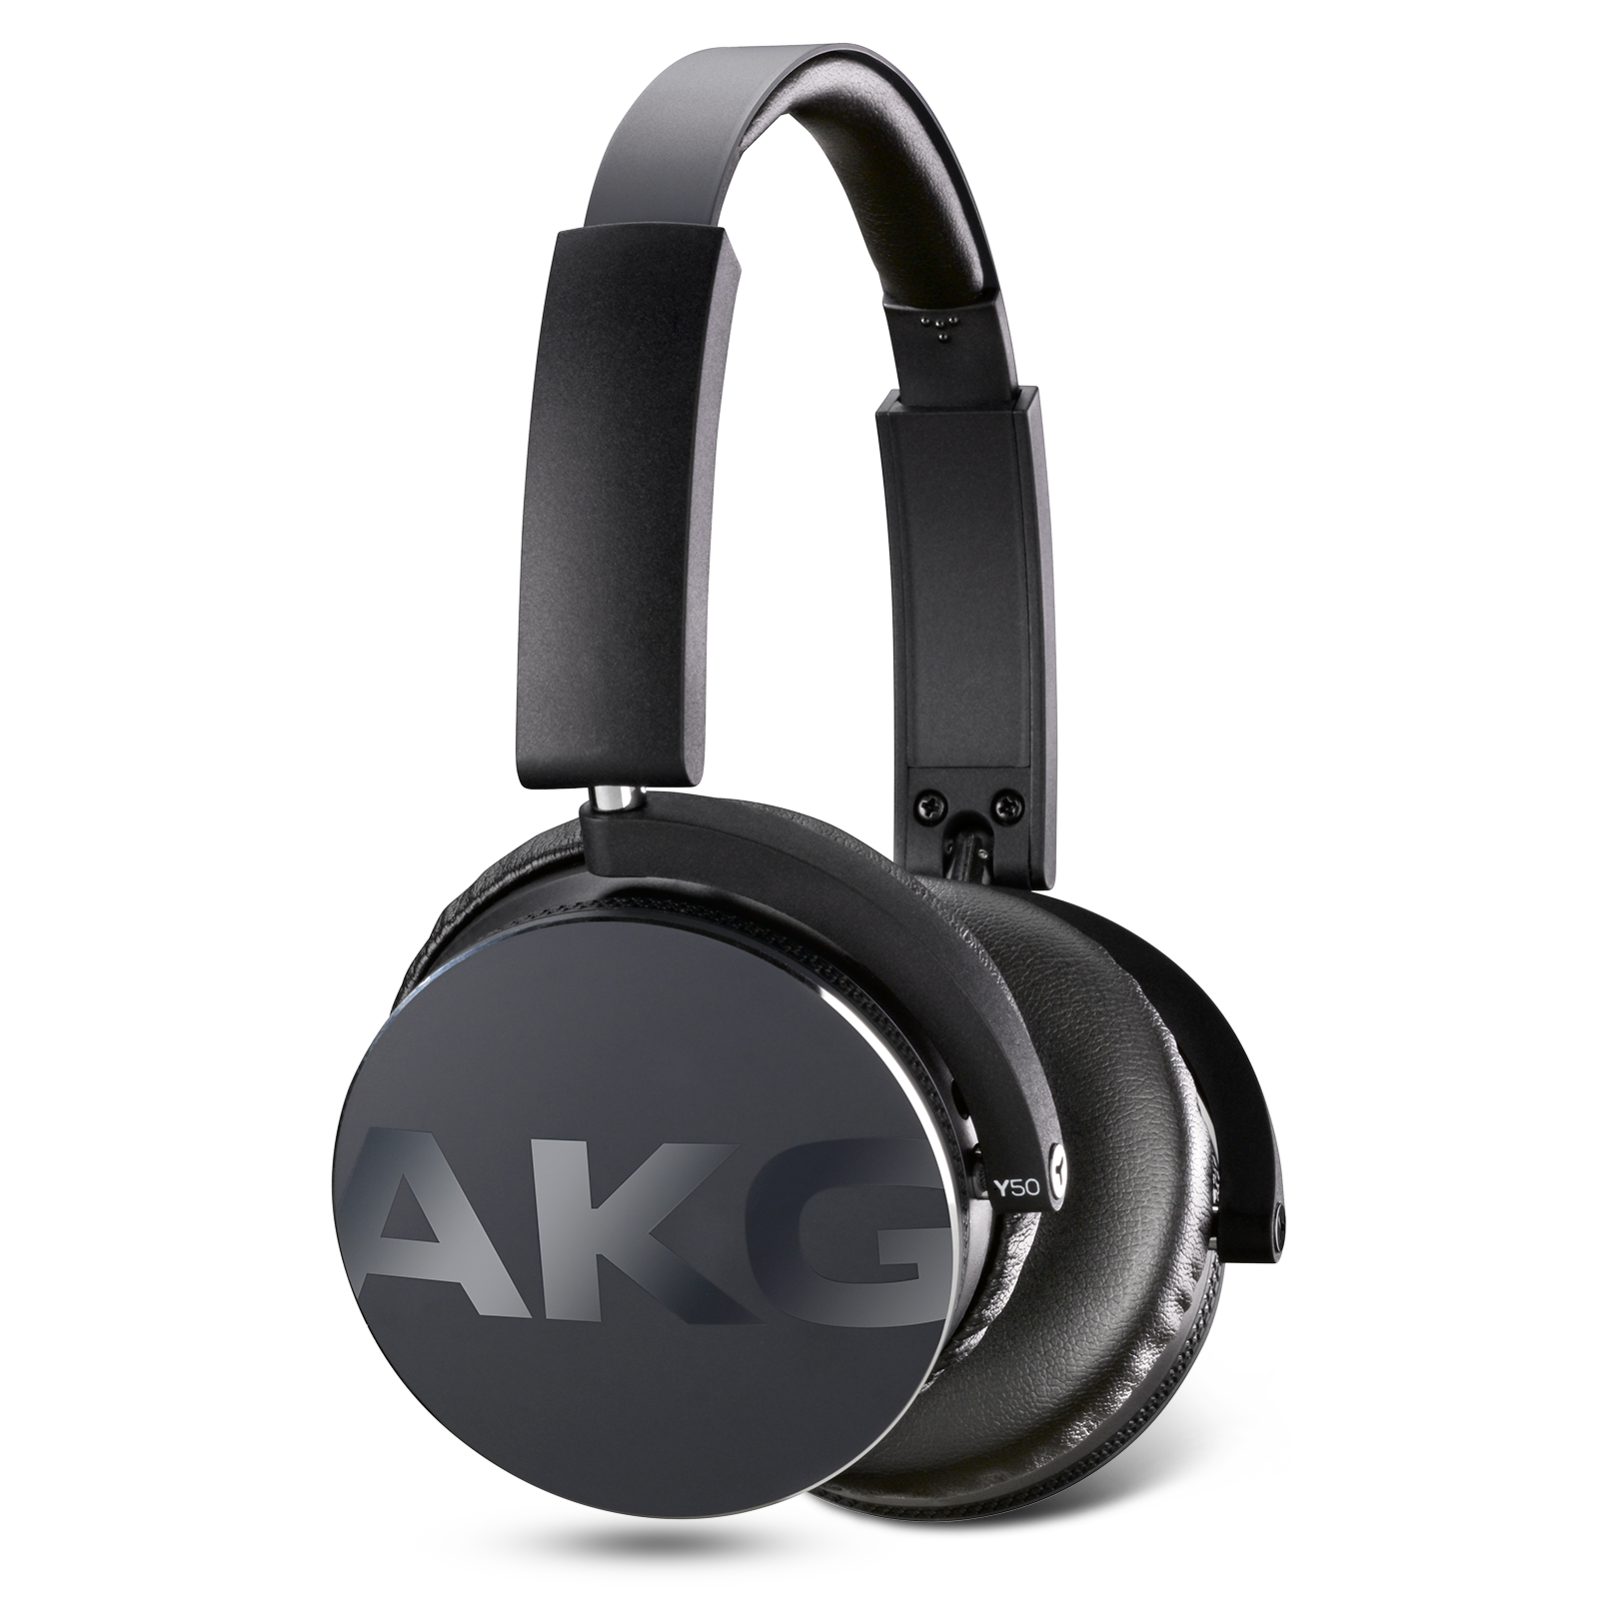 Y50 - Black - On-ear headphones with AKG-quality sound, smart styling, snug fit and detachable cable with in-line remote/mic - Detailshot 4